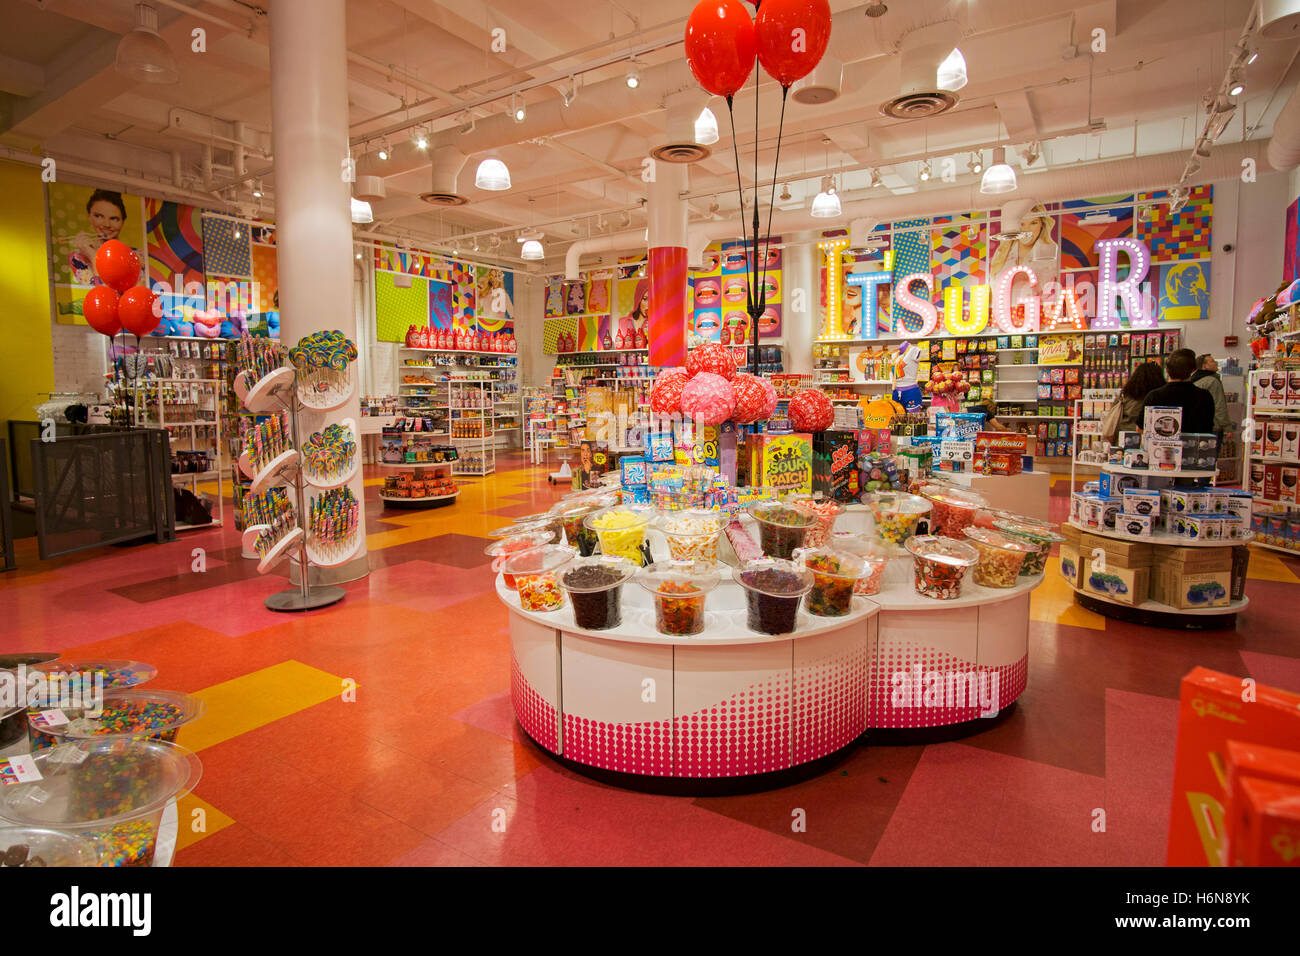 An Interior Wide View Of Itu0027Sugar, A Candy By The Pound Chain Store Stock  Photo: 124628551   Alamy